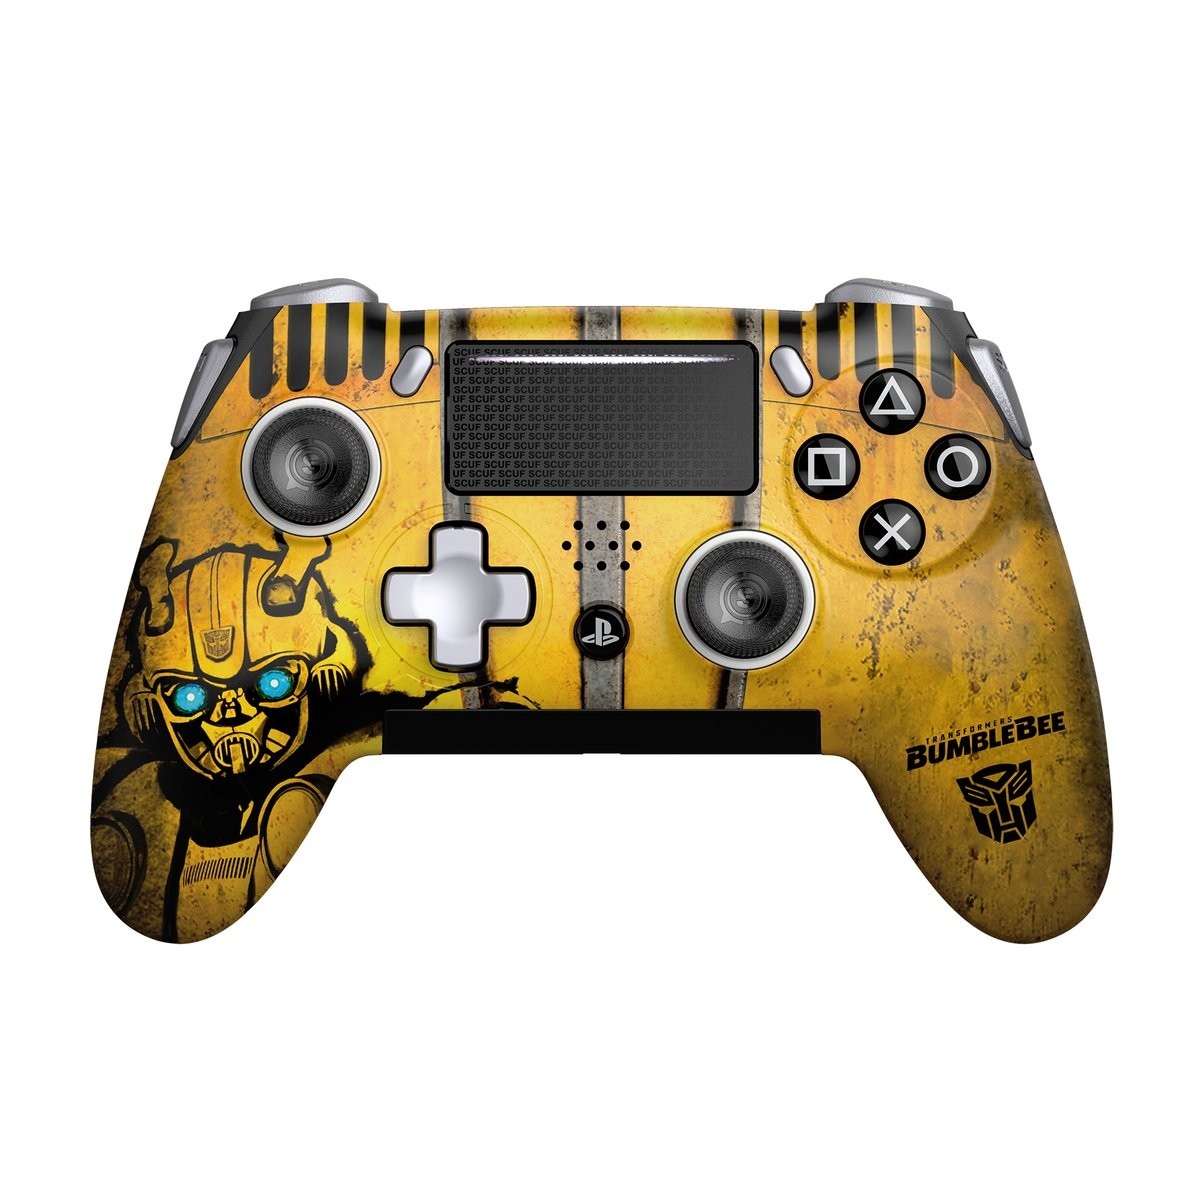 Transformers News: Bumblebee Edition SCUF Vantage Play Station 4 Controller Revealed